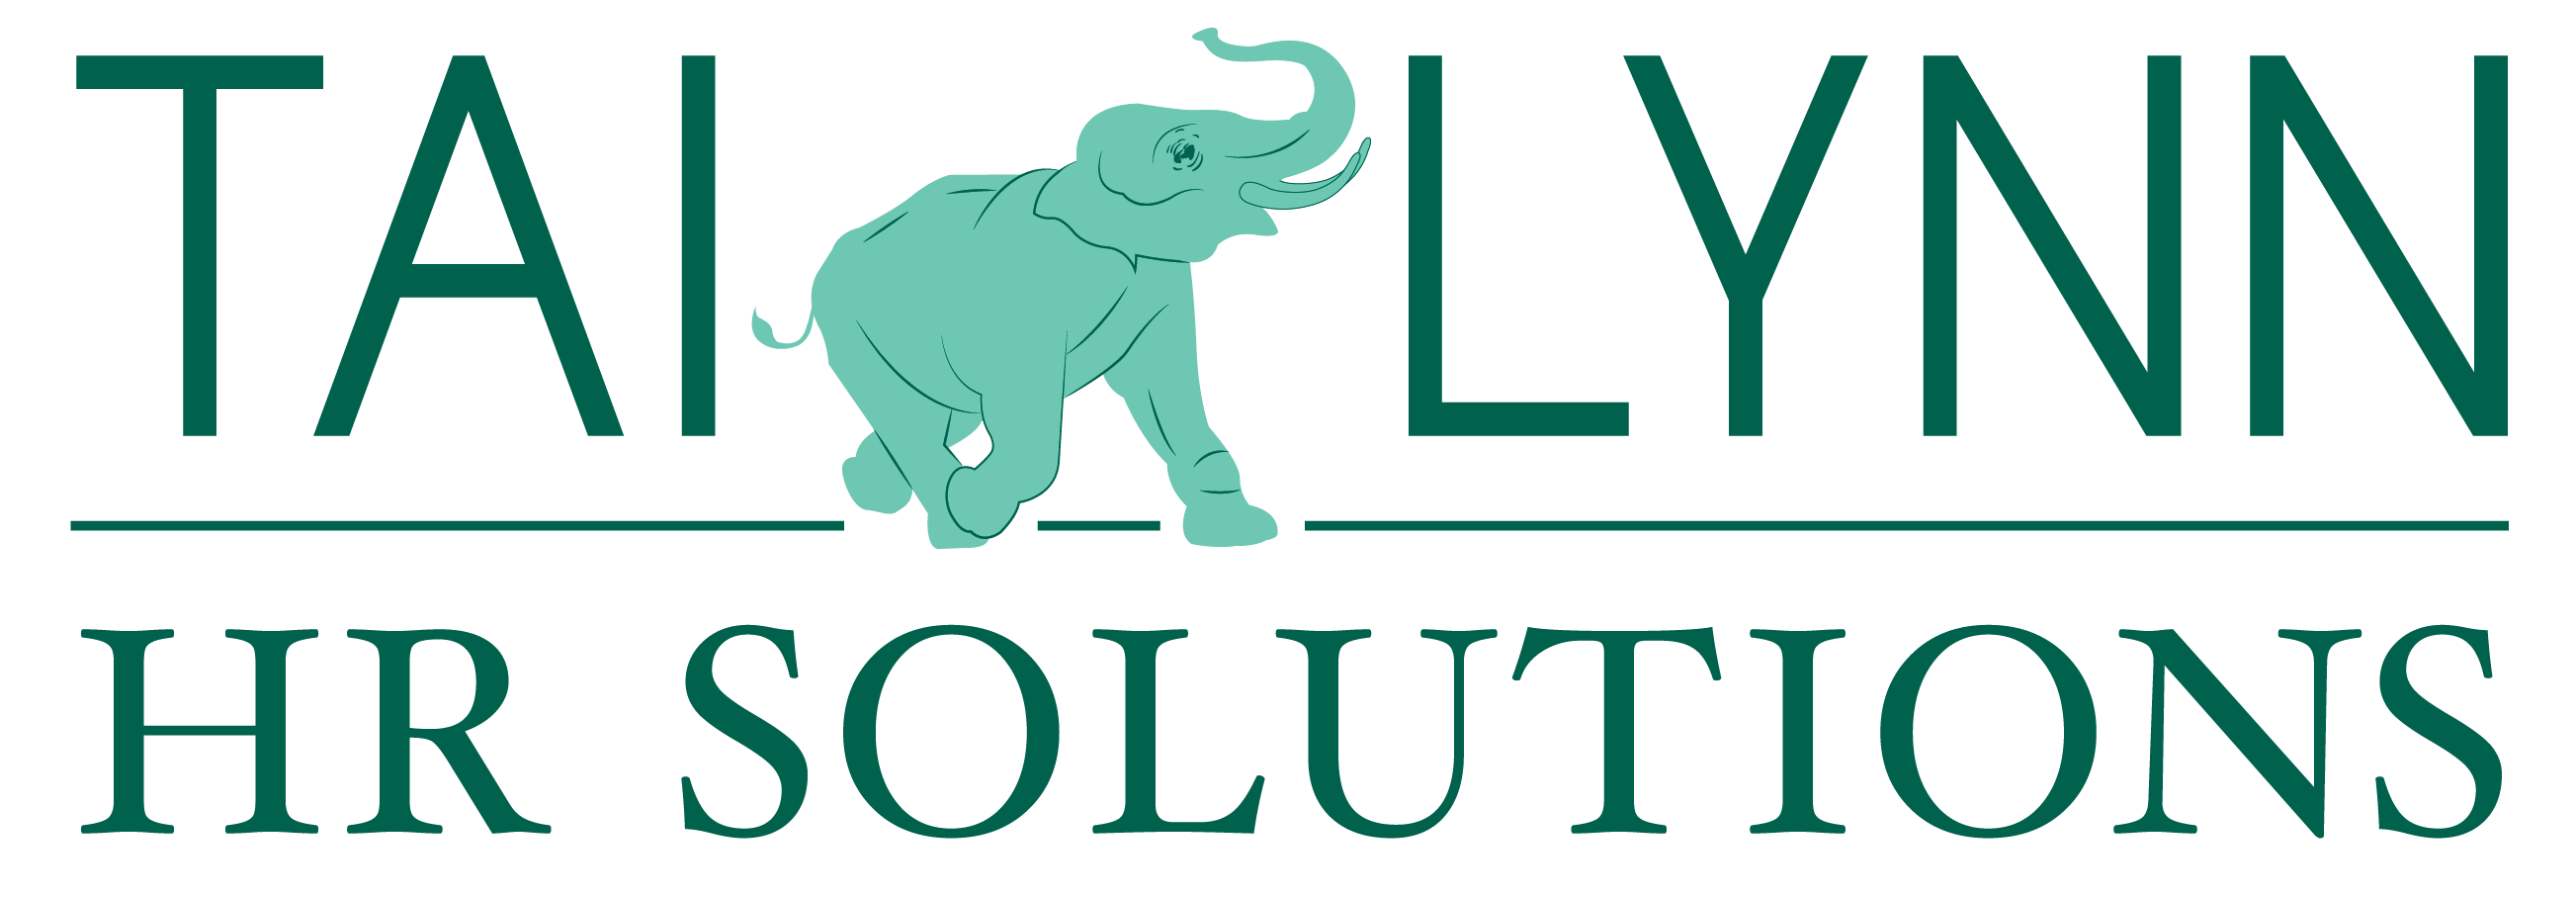 TAI LYNN HR Solutions